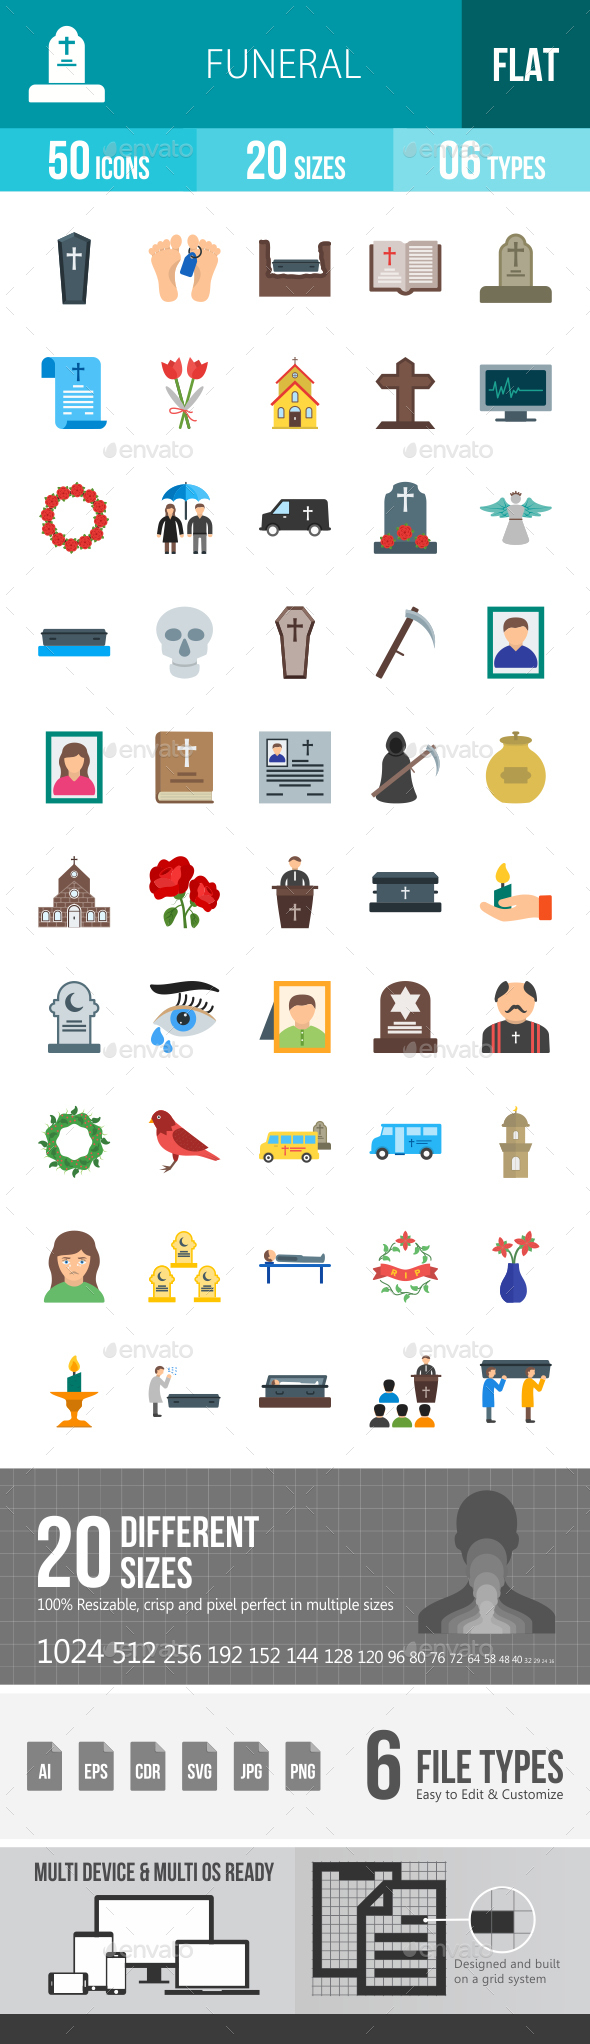 Funeral Flat Multicolor Icons - Icons